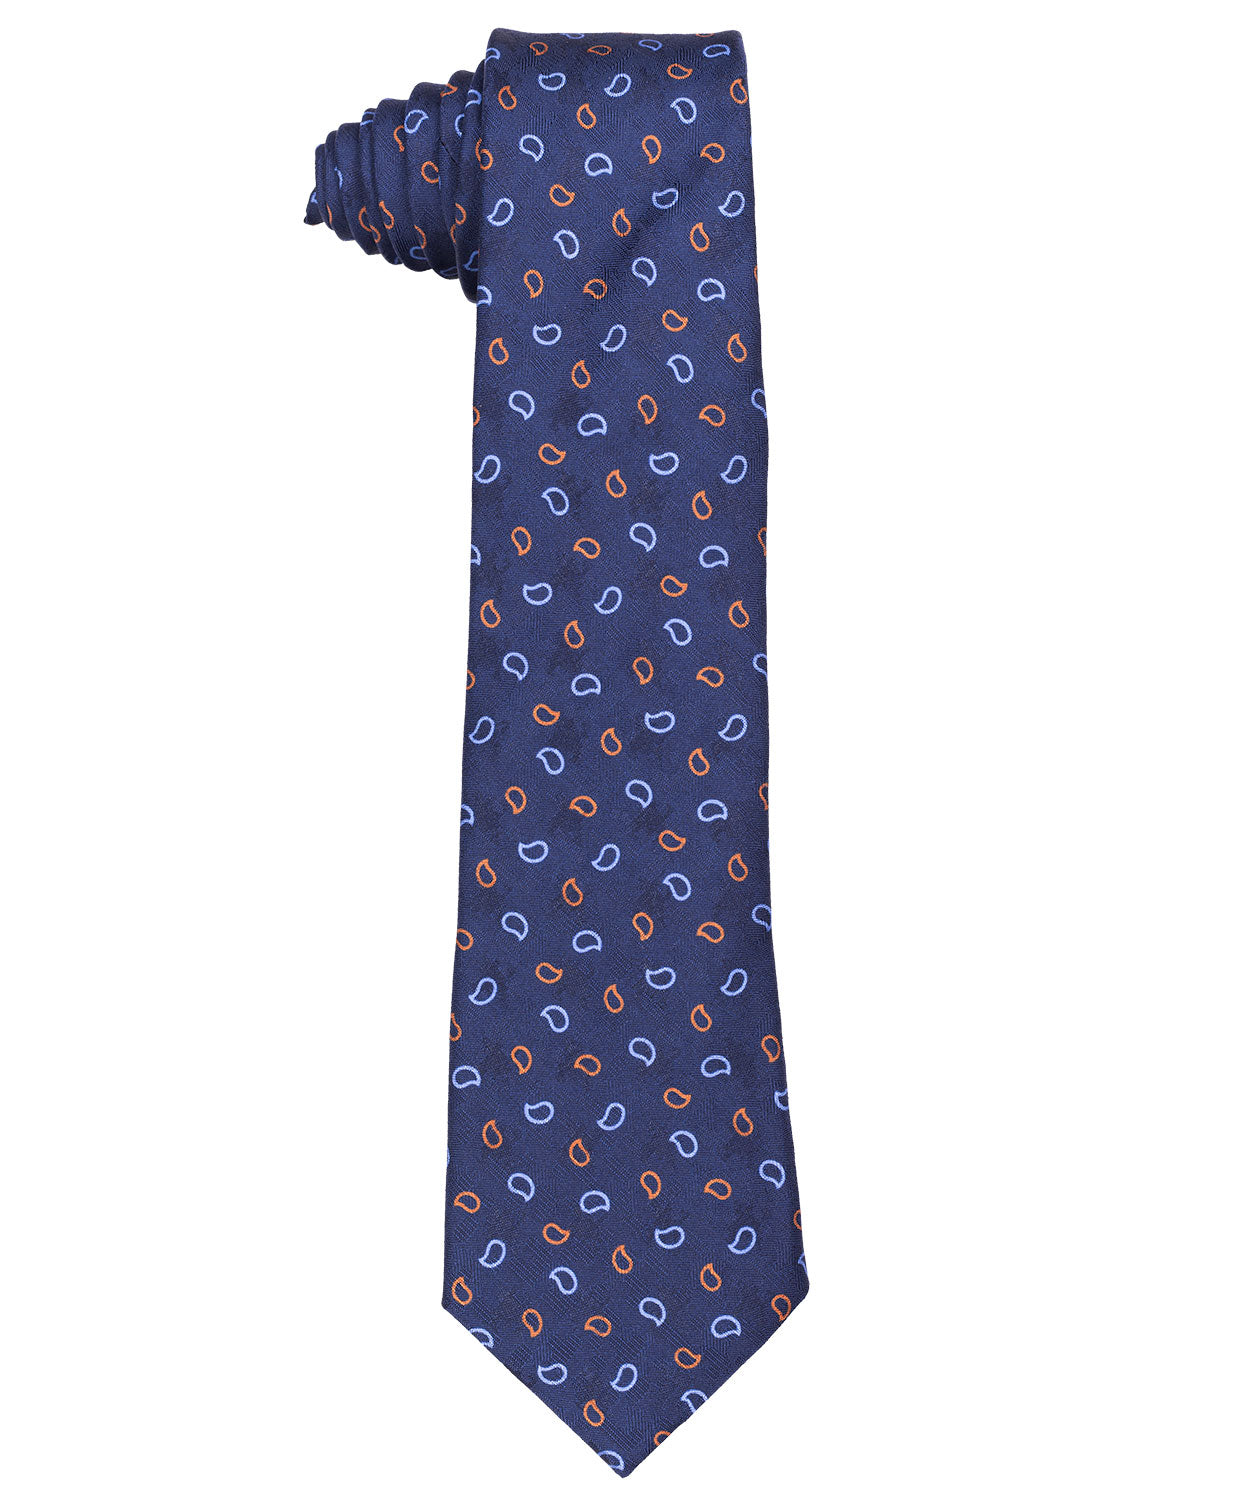 8.0cm Royal Blue/Sky/Cognac Small Clean Paisely Jacquard Tie